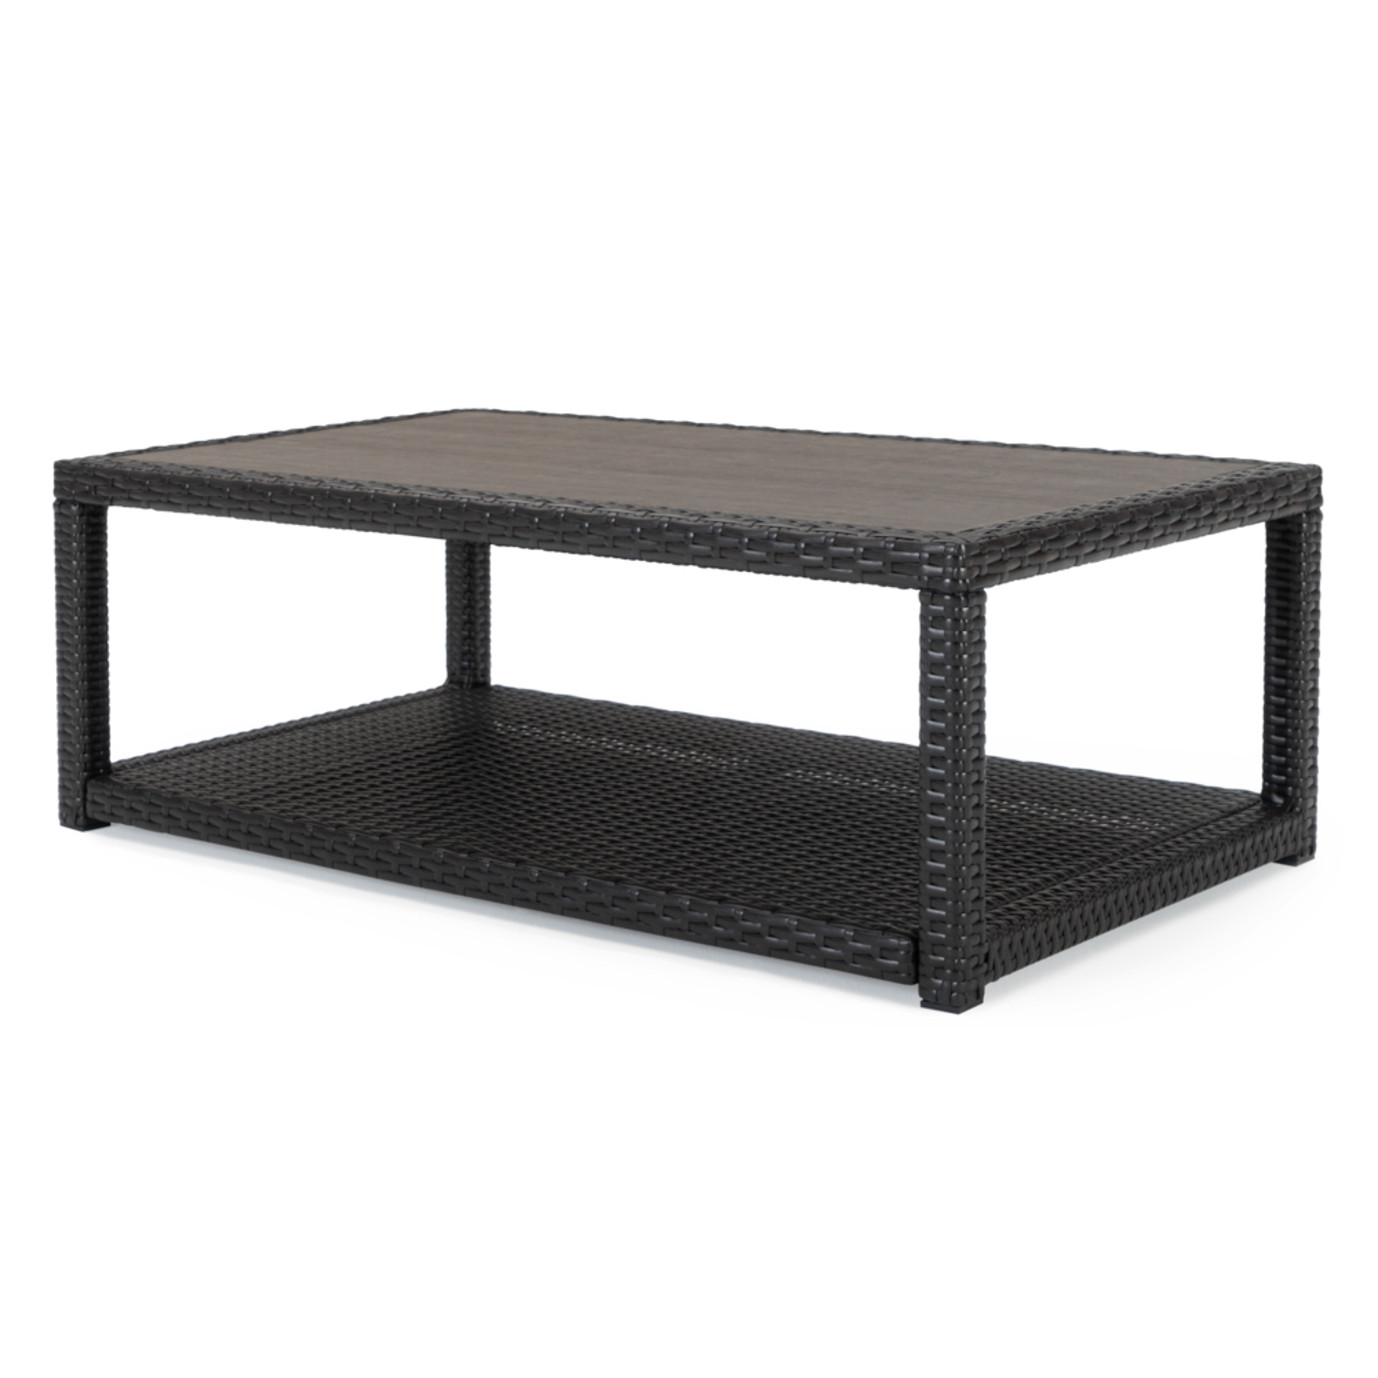 Portofino® Comfort Faux Wood Coffee Table - Espresso